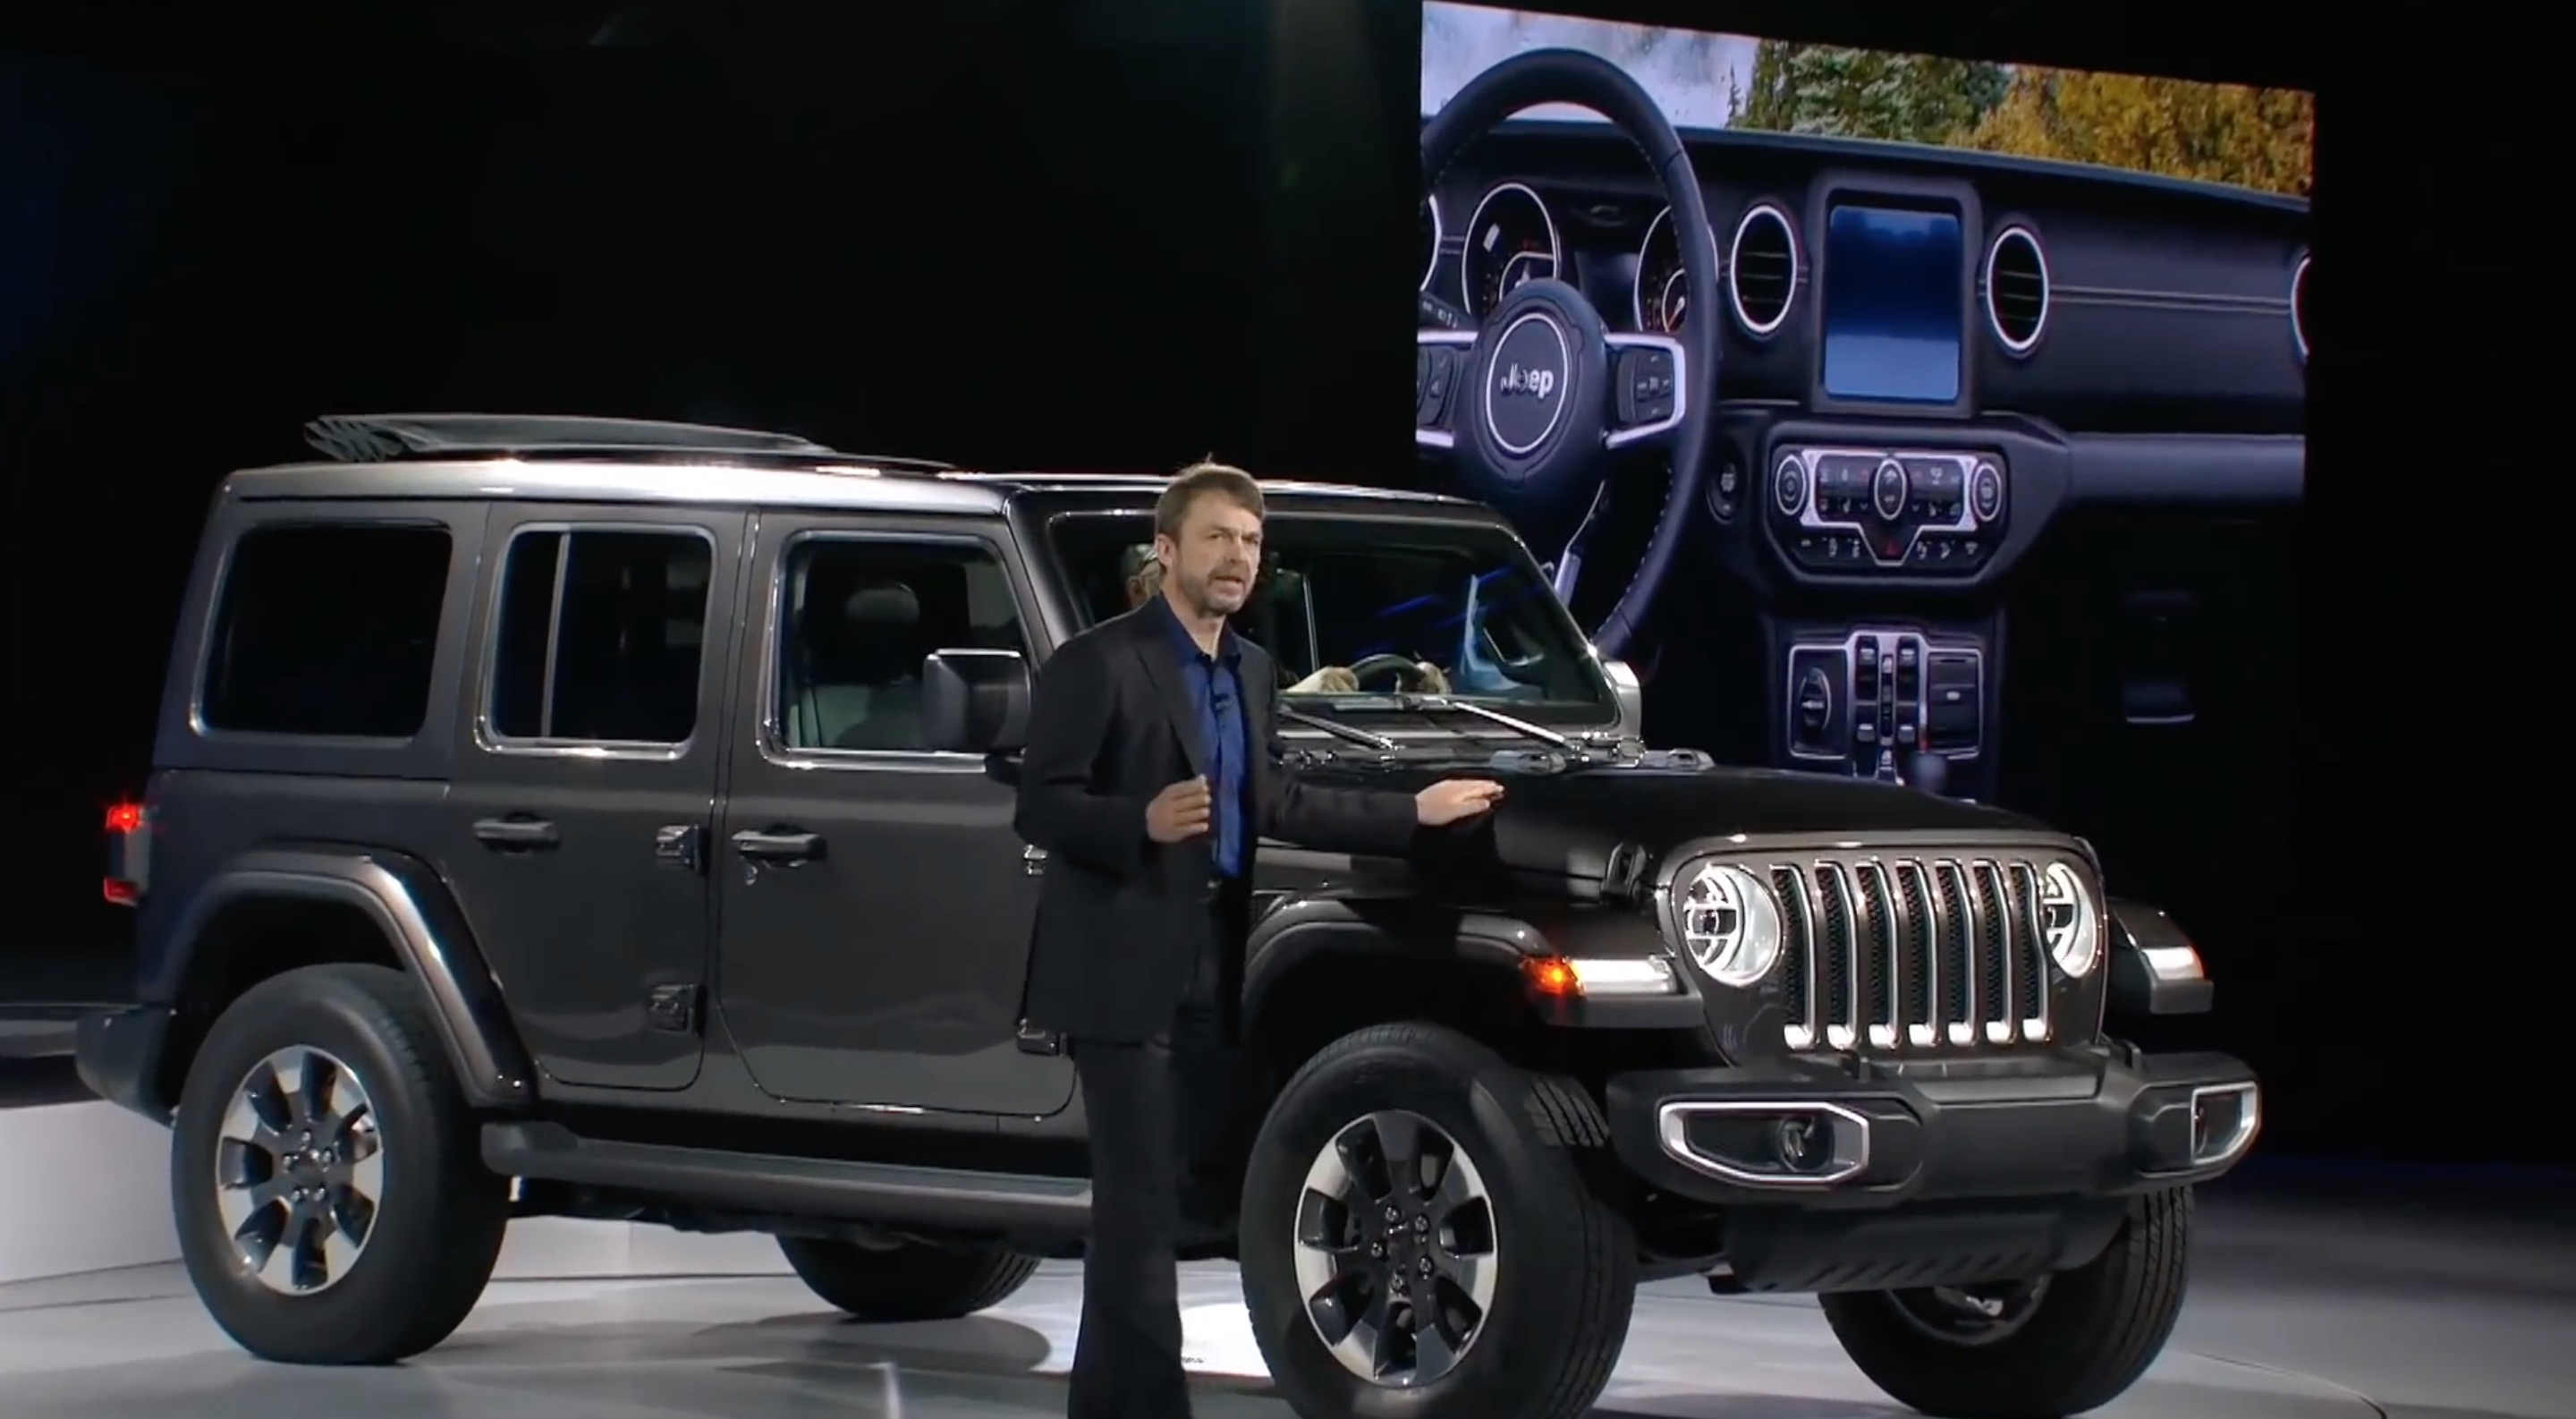 Plug In Hybrid Electric Wrangler Coming In 2020 Announces Jeep Ceo